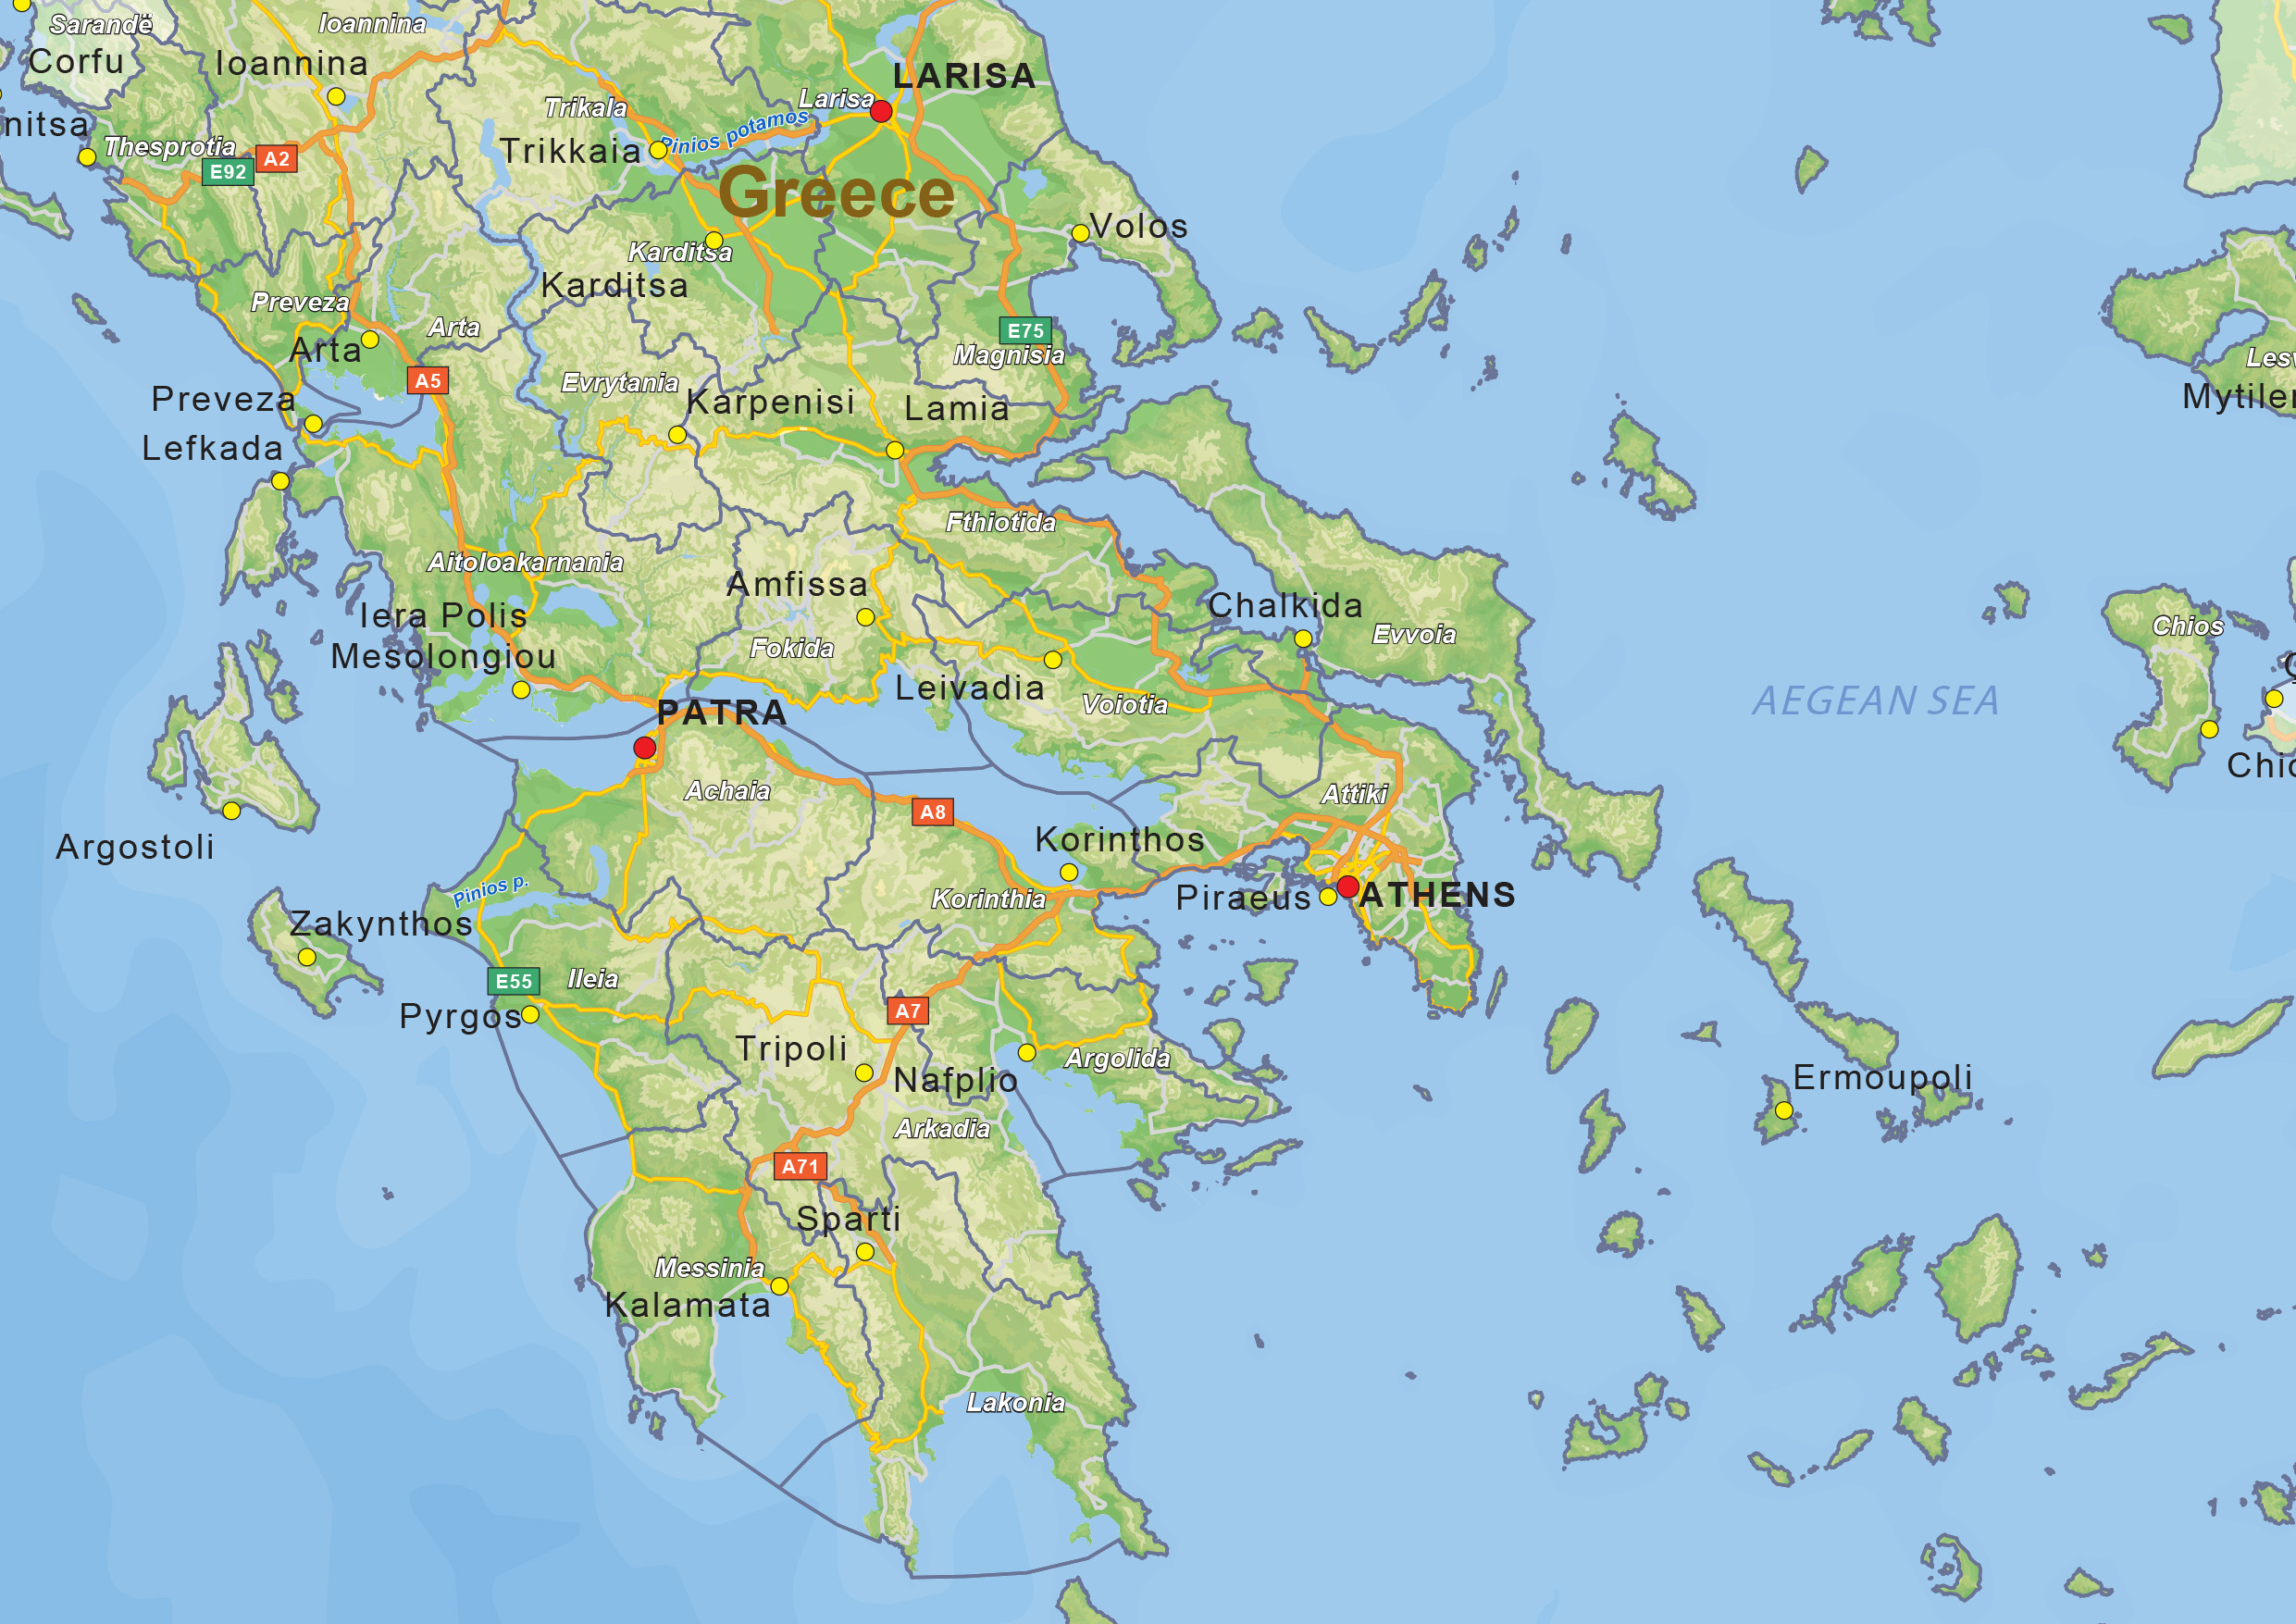 Digital physical map of Greece 1435 The World of Mapscom